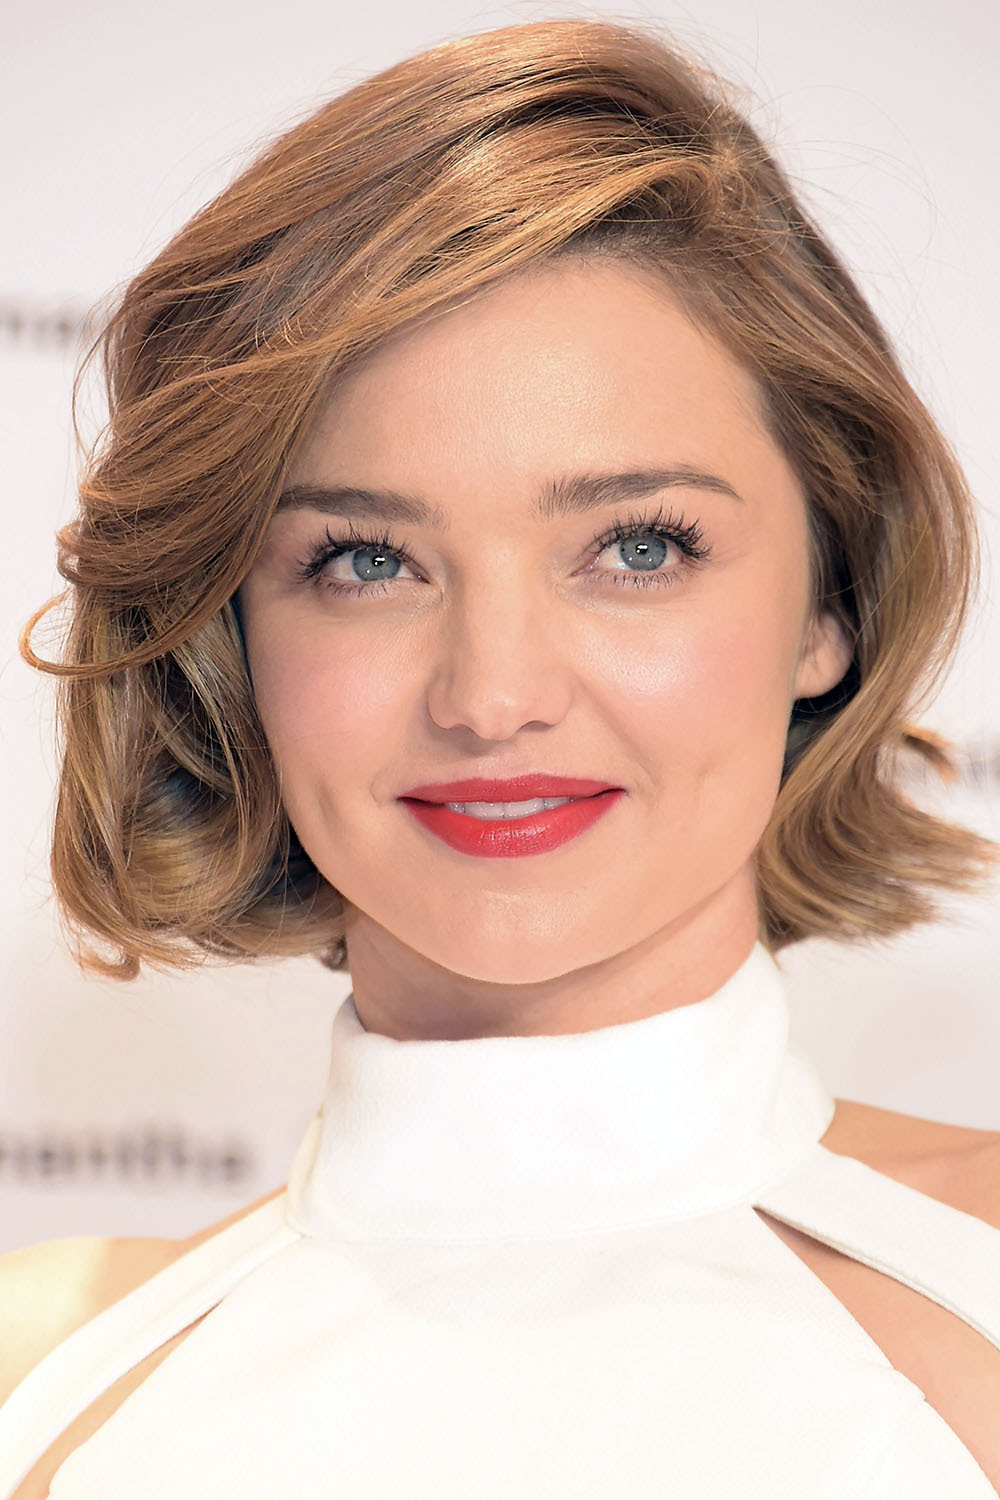 30 Latest Short Hairstyles For Winter Popular Haircuts Haircuts